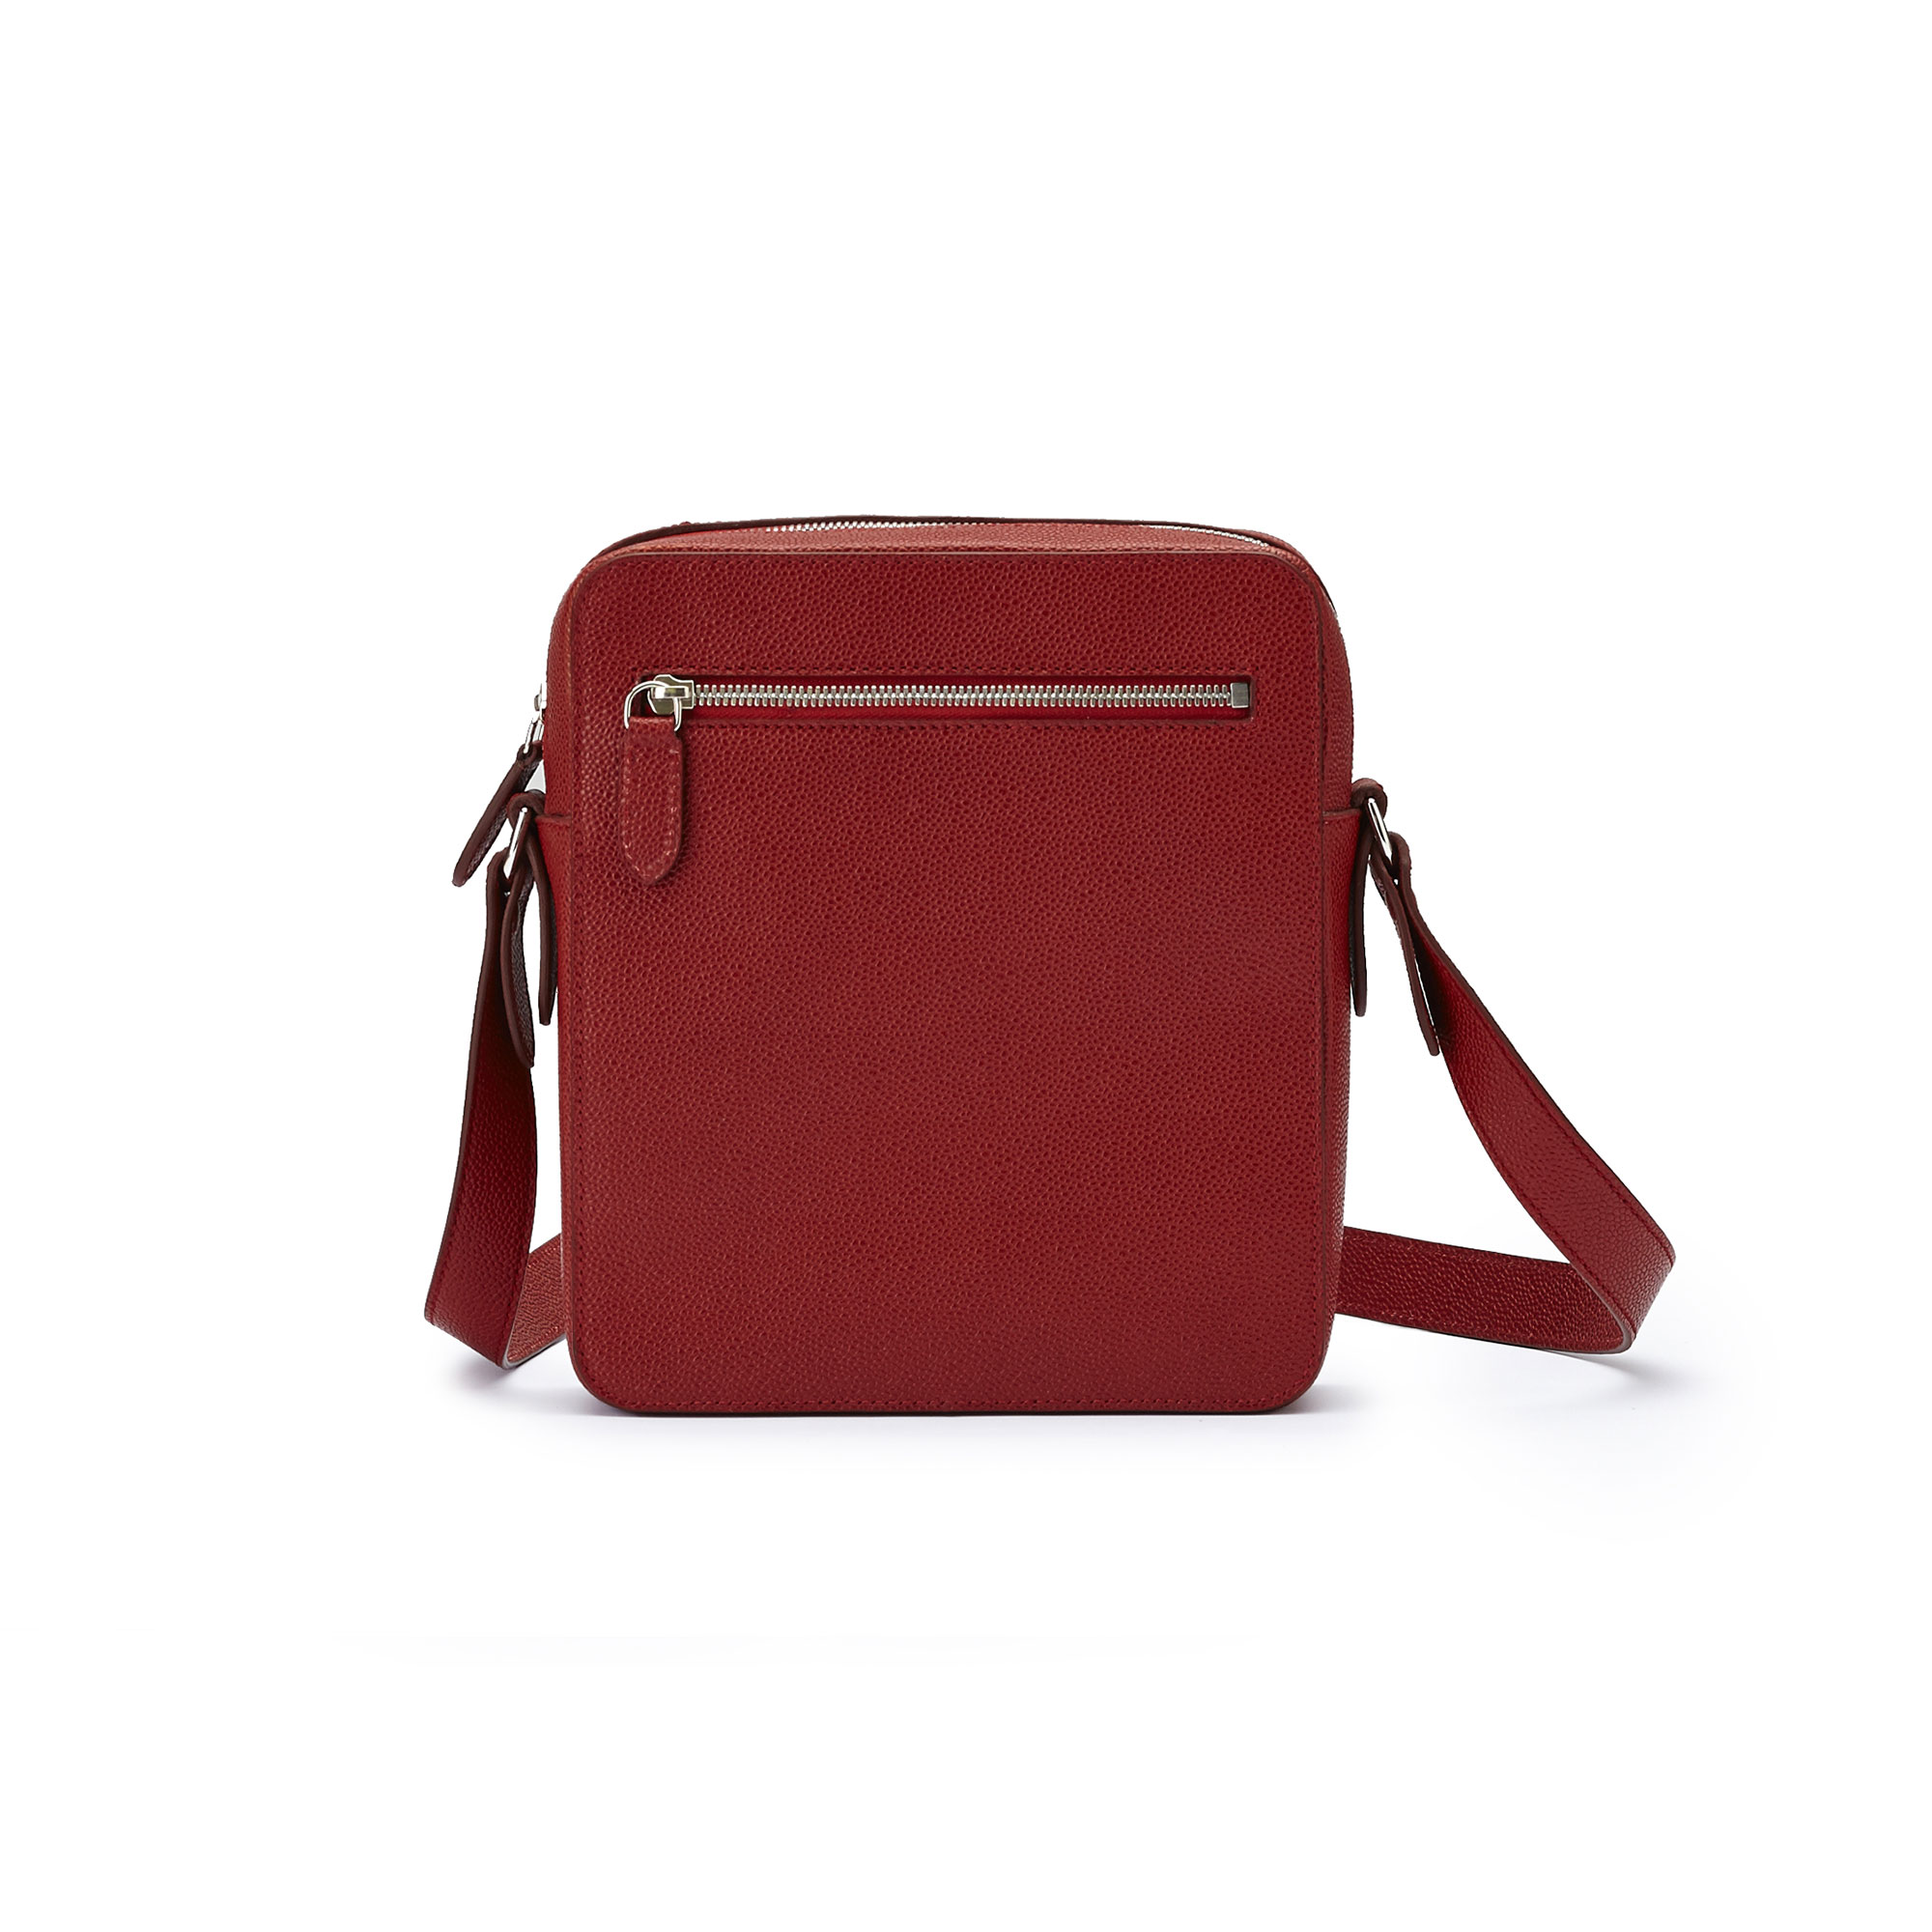 The red grain calf Man Bag by Bertoni 1949 03